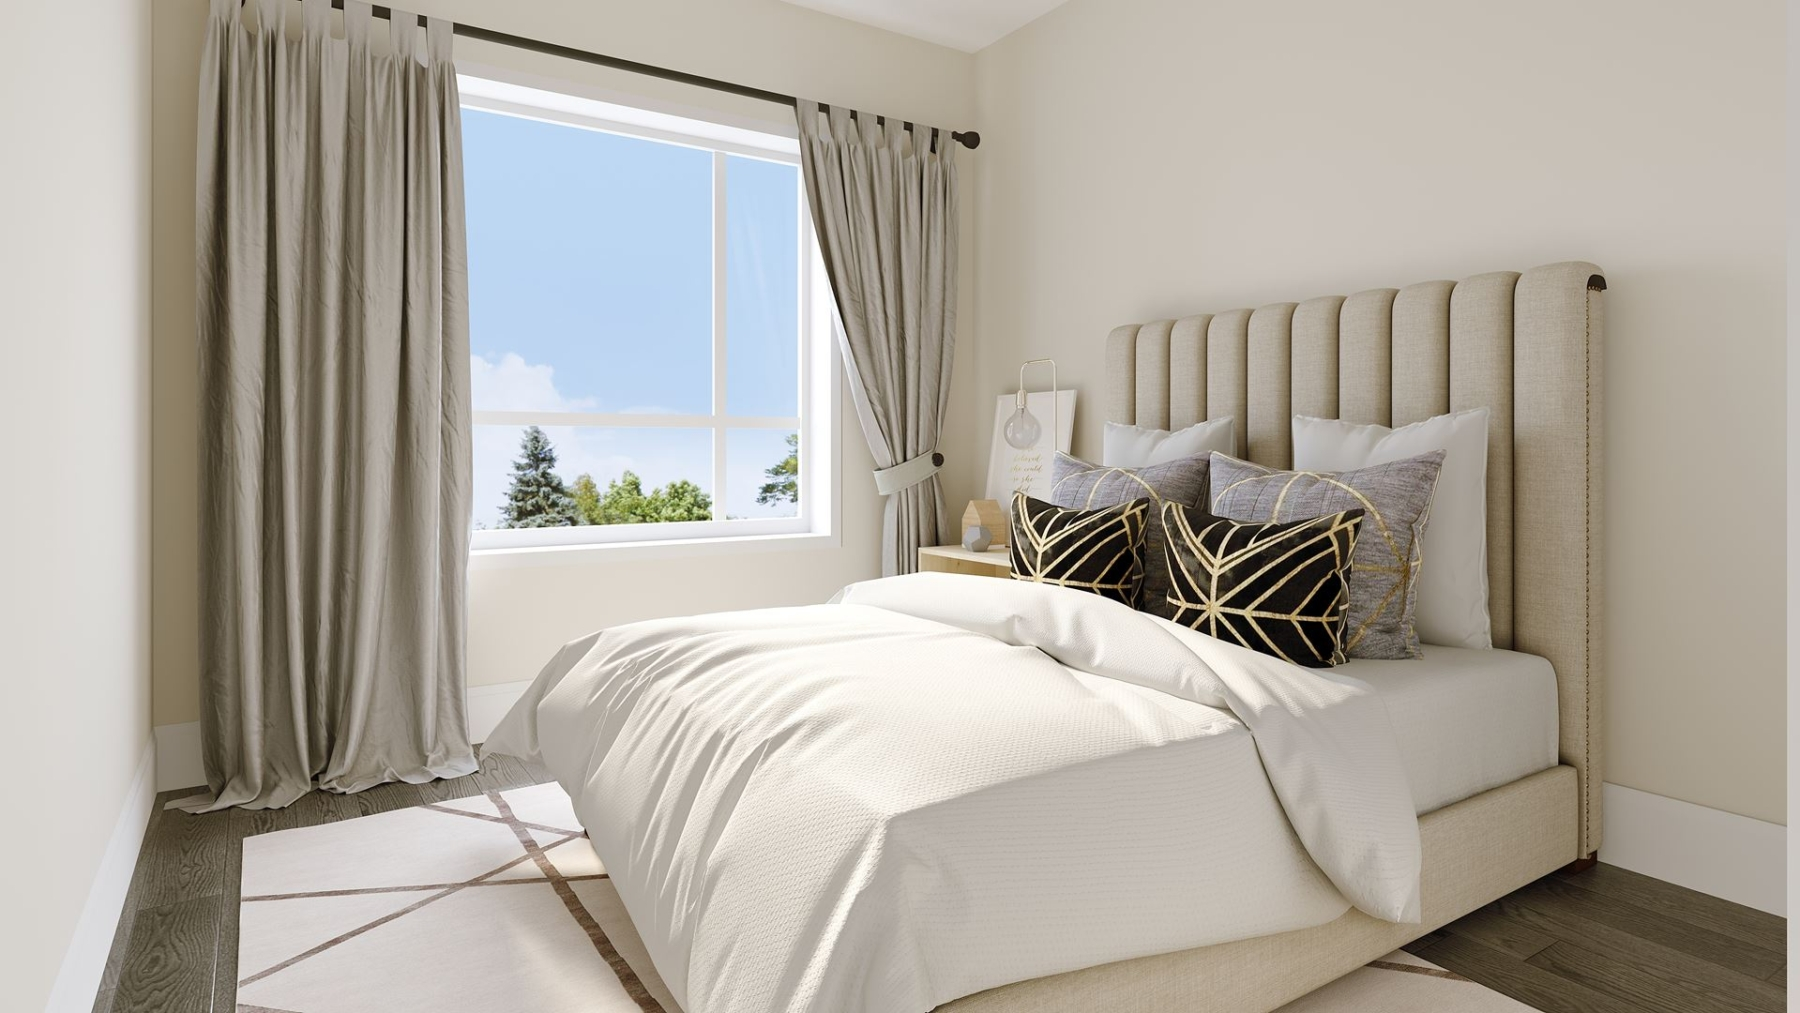 Rendering of Montebello Condos interior bedroom